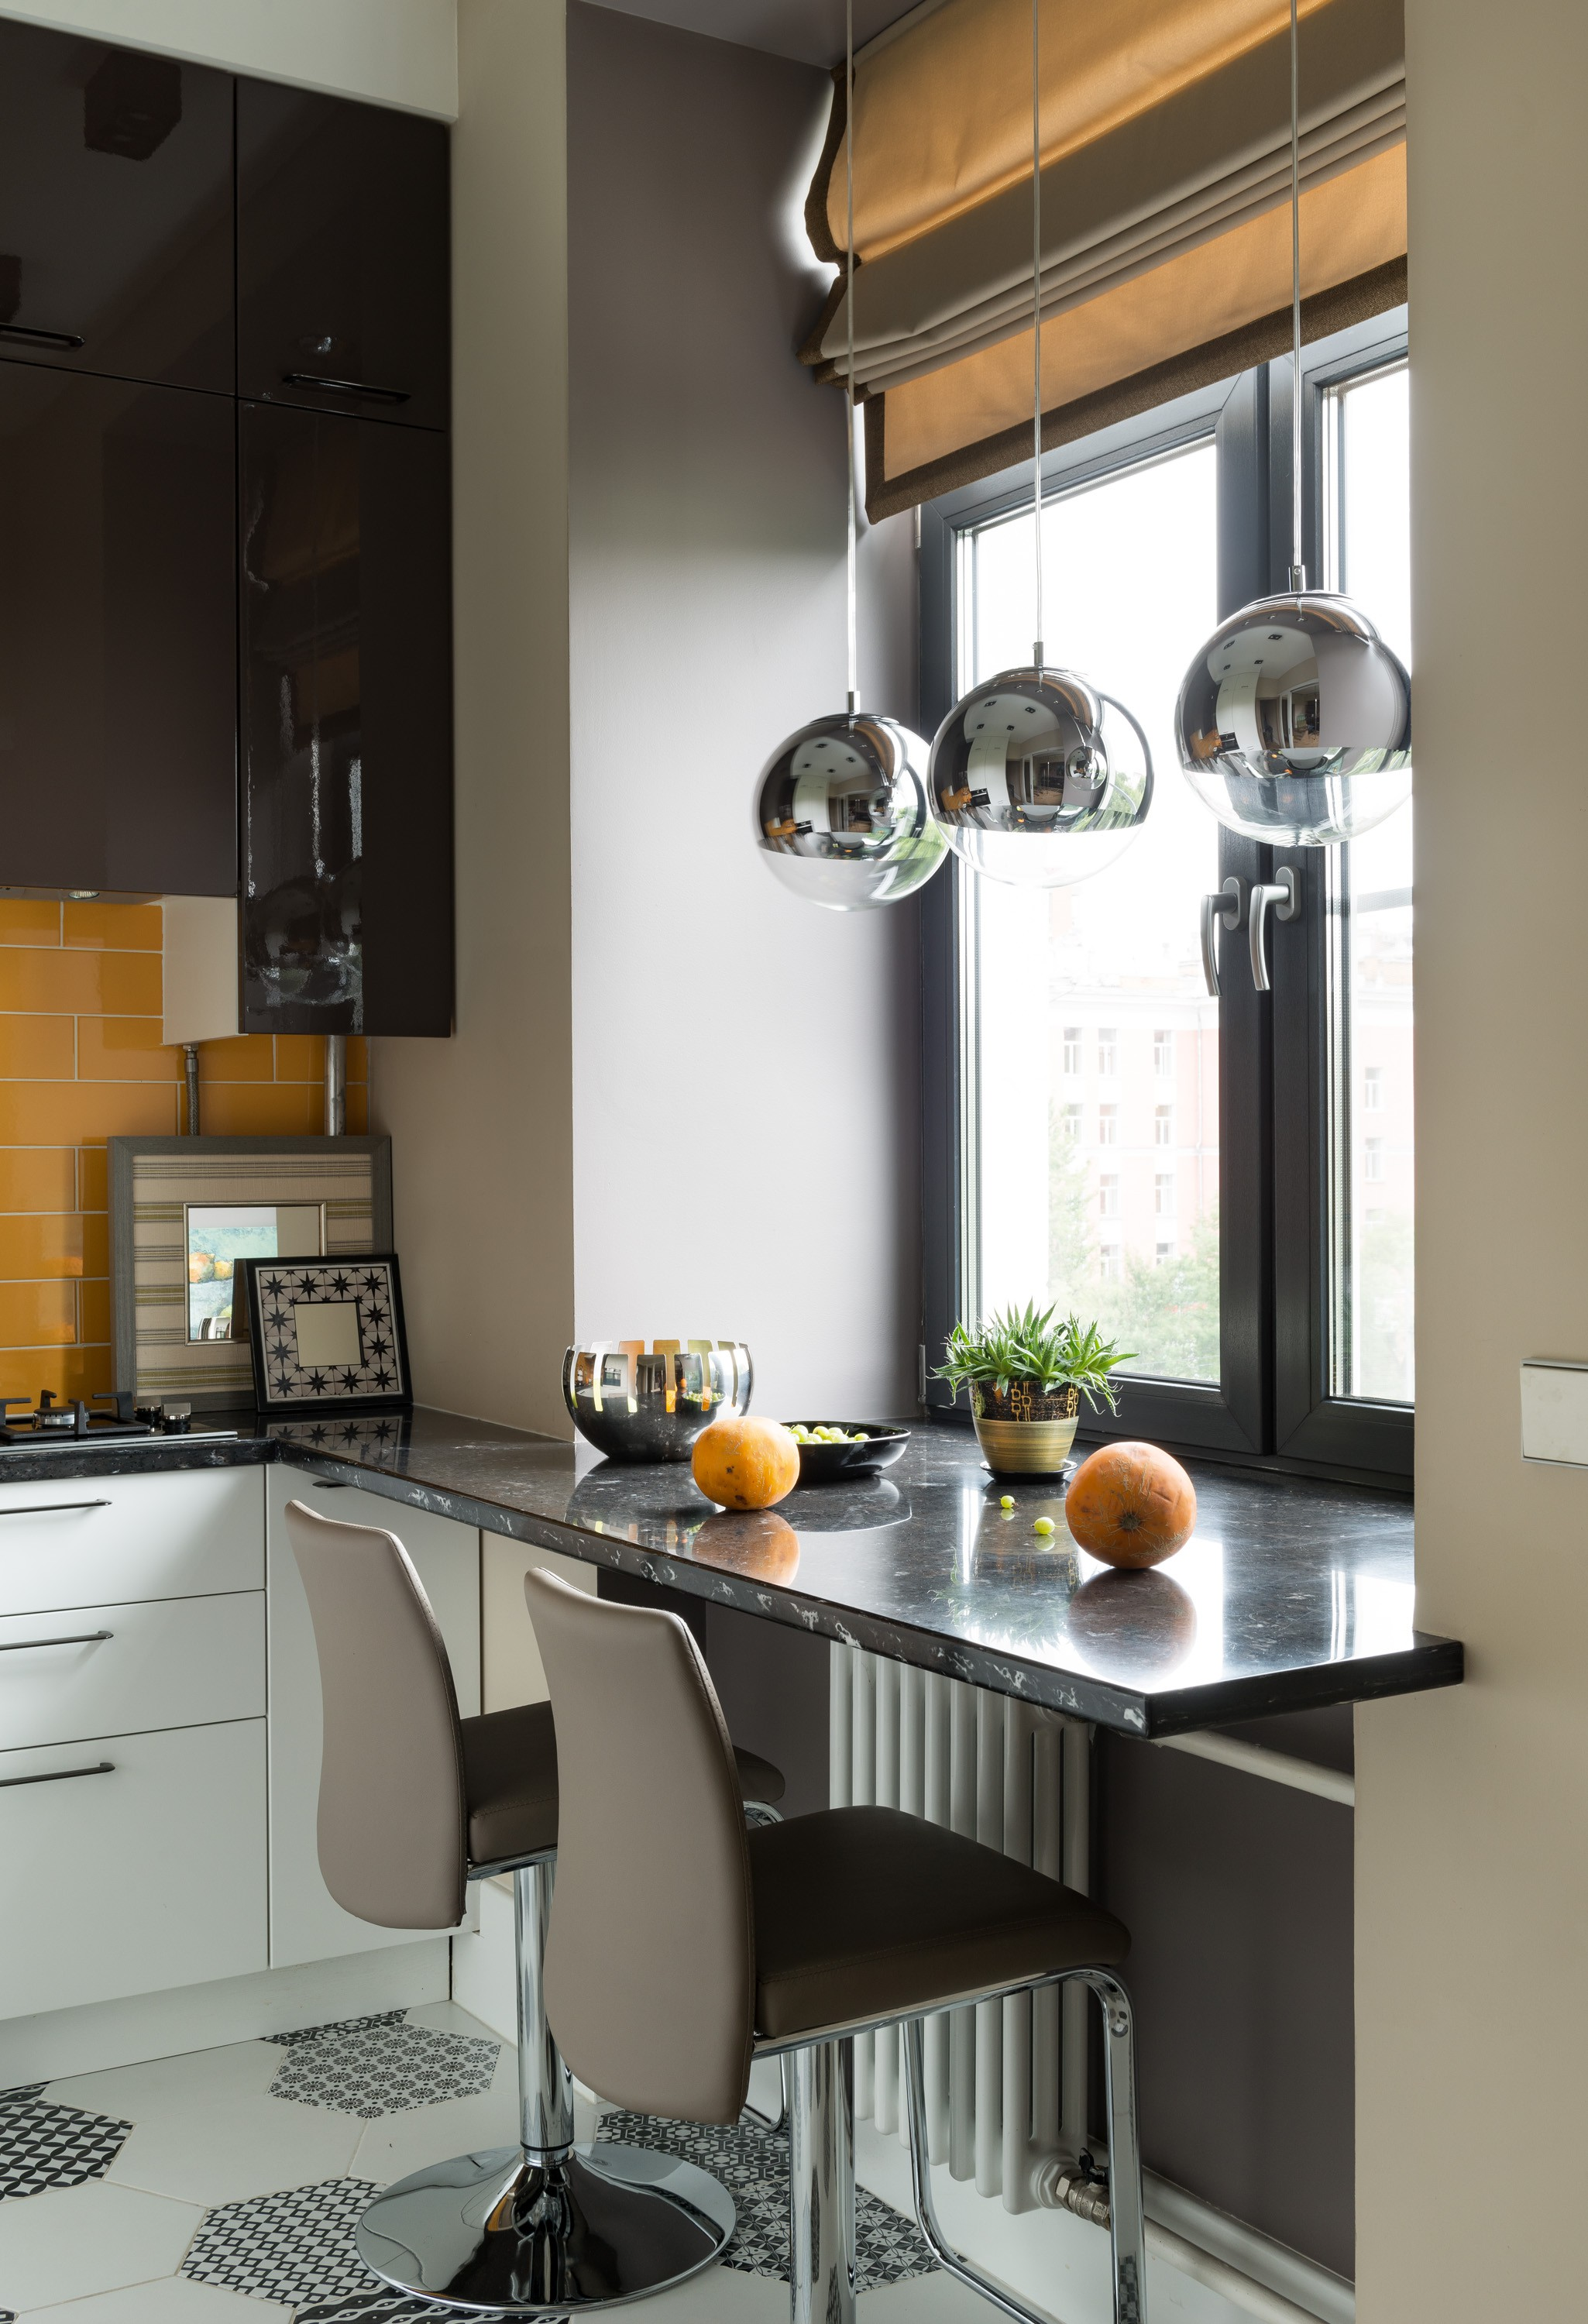 75 Beautiful Small Kitchen Pictures Ideas November 2020 Houzz